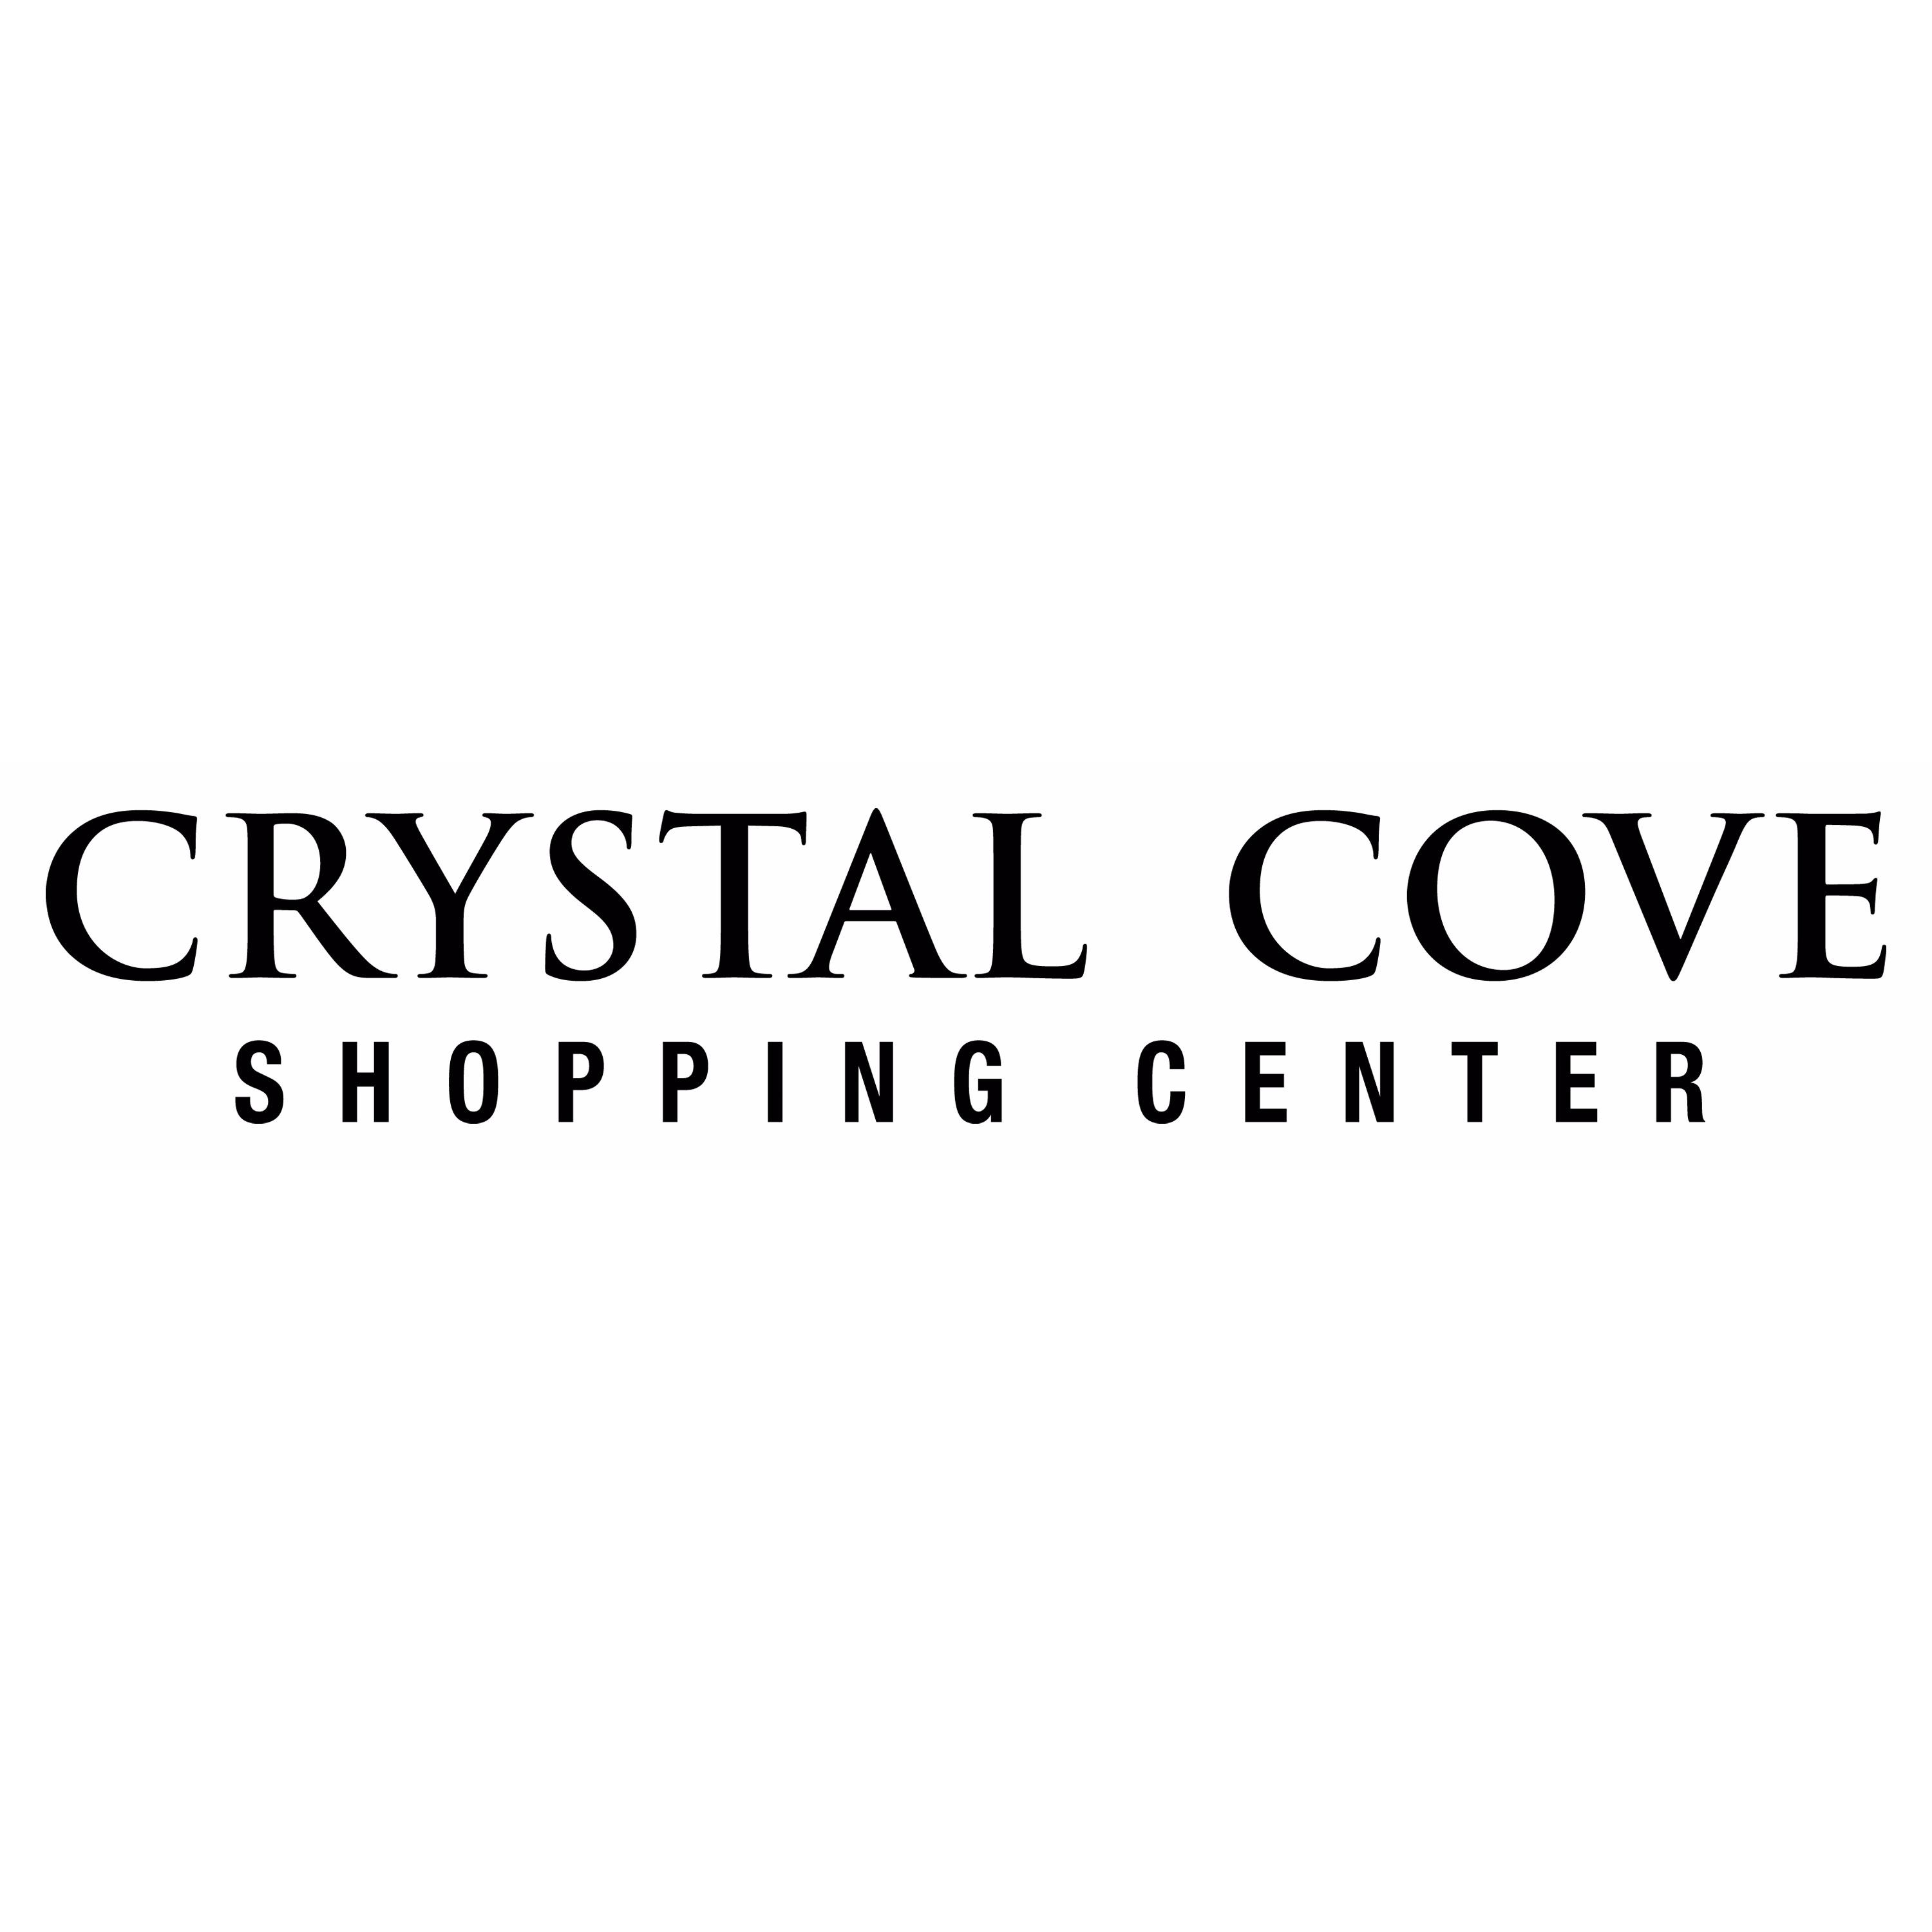 Crystal Cove Shopping Center - Newport Beach, CA - Variety Stores